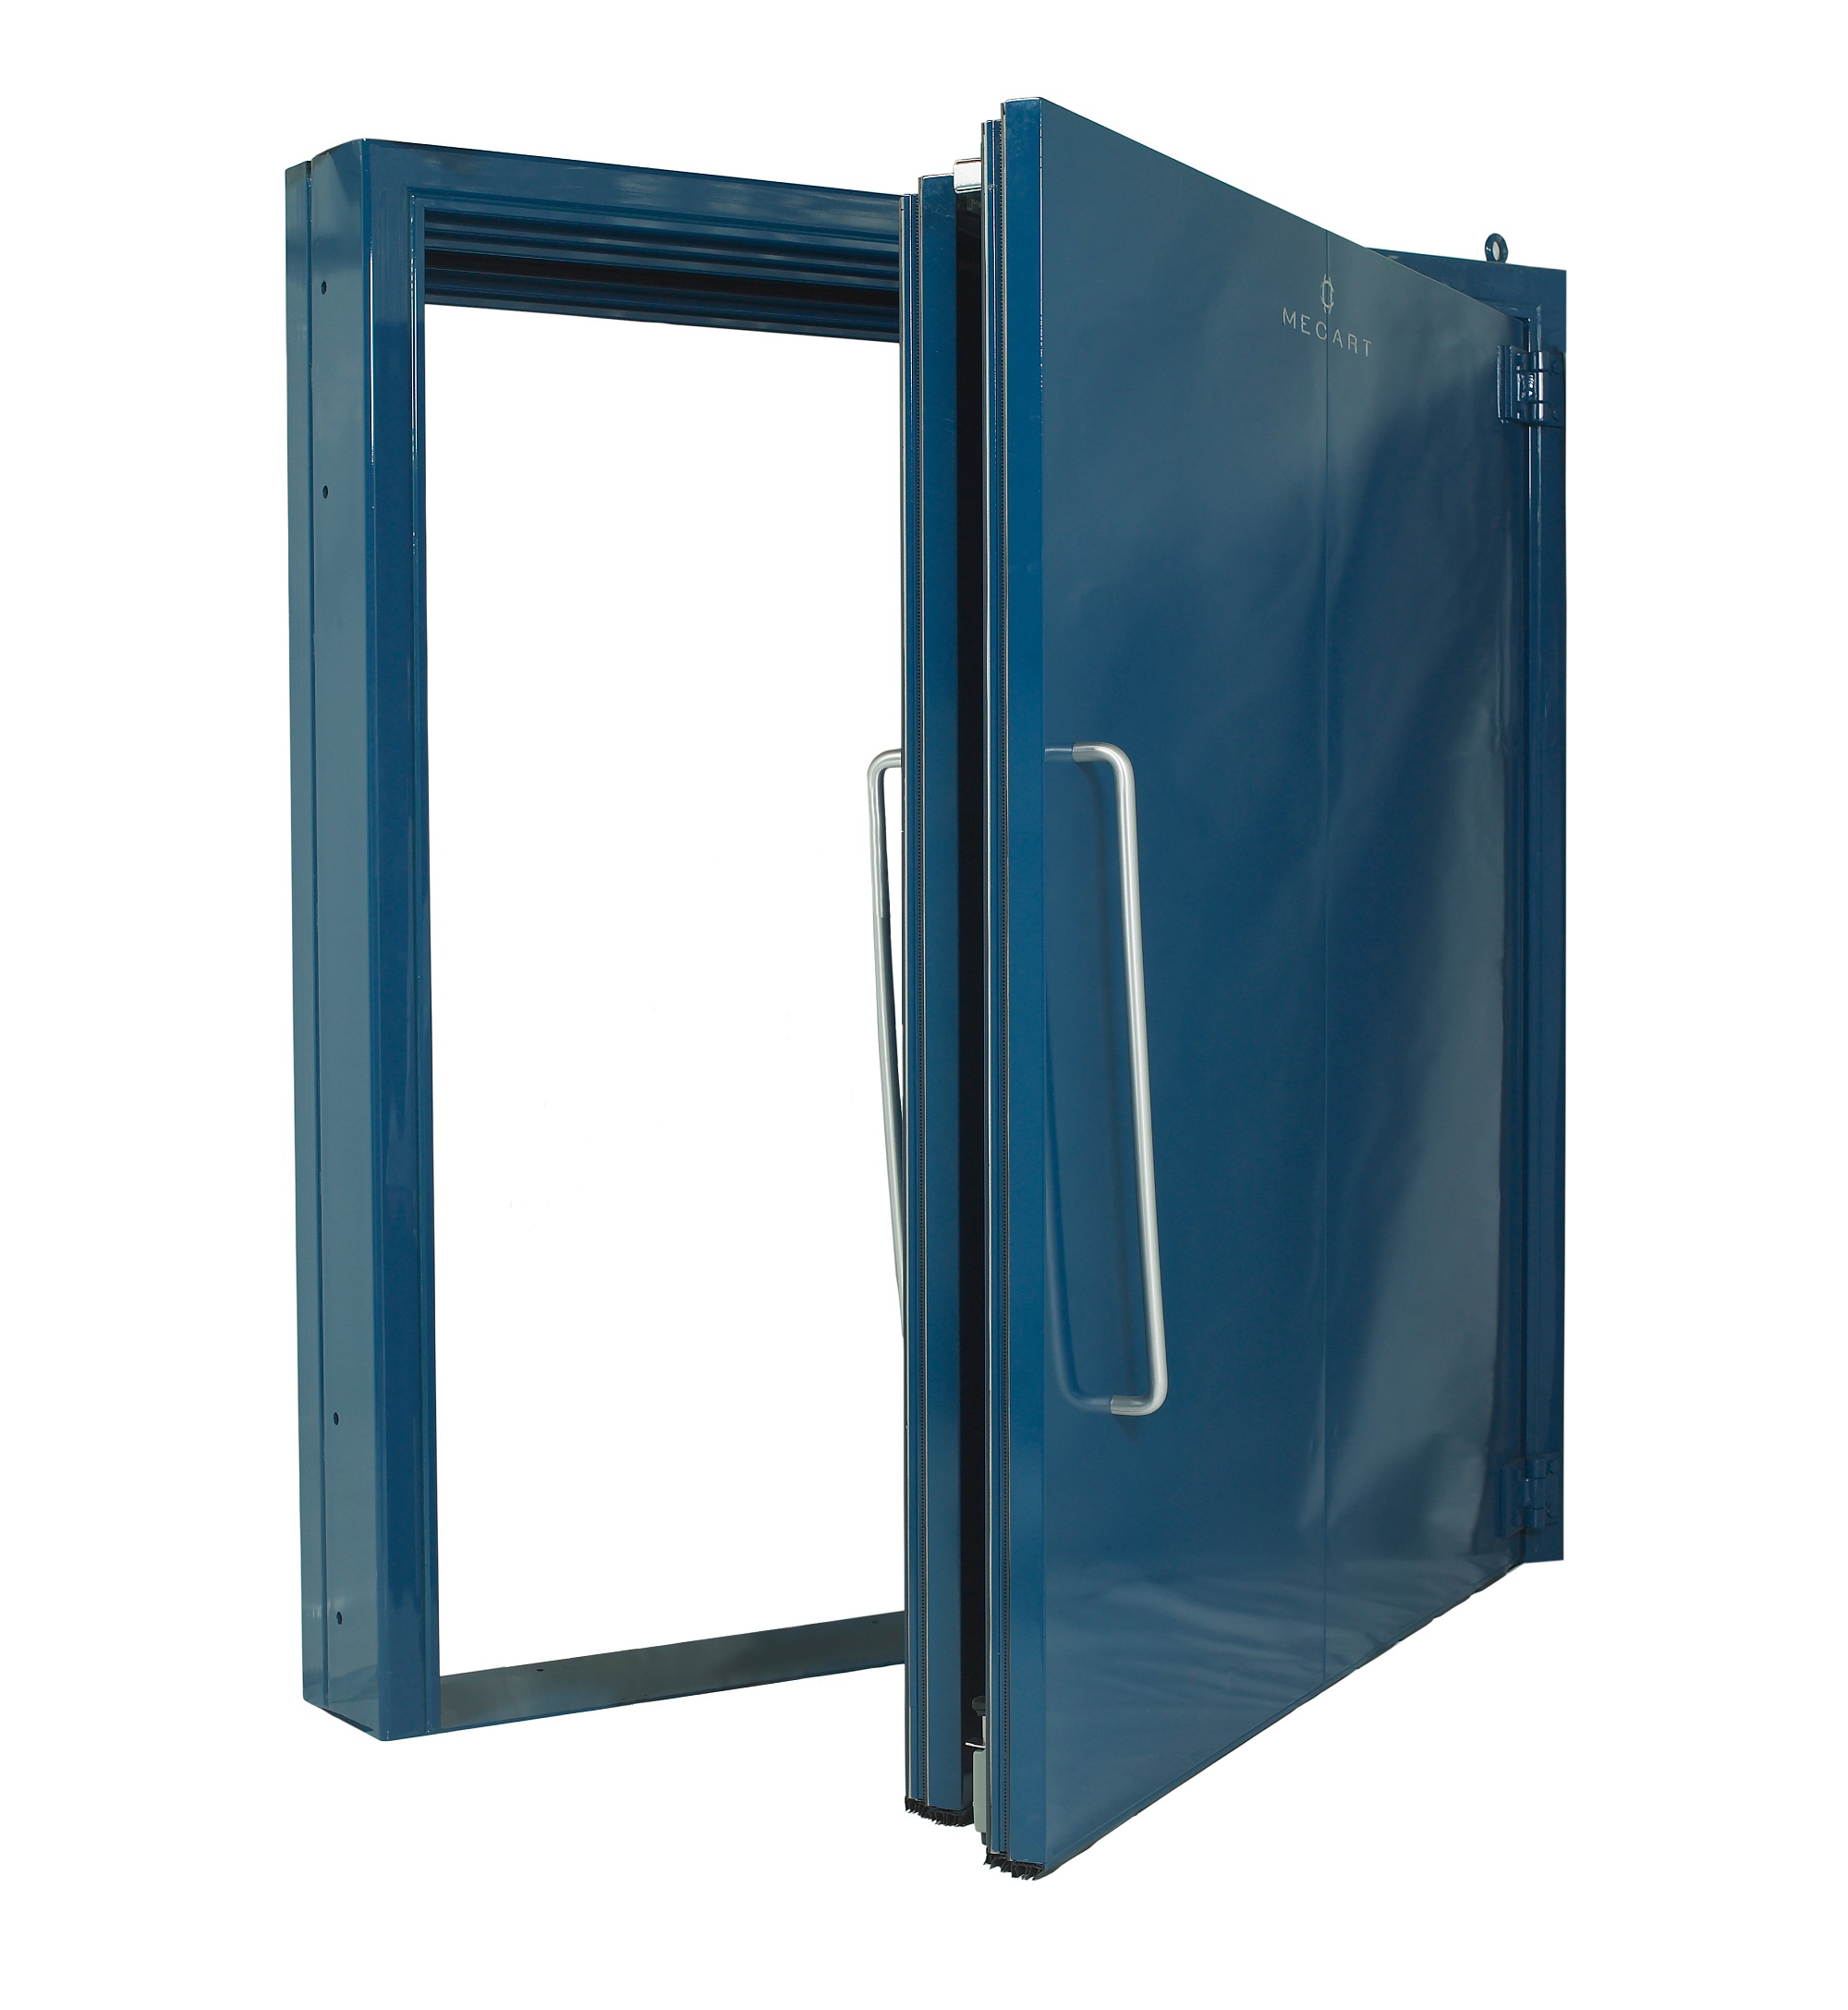 Porte acoustique en acier galvanis qualit industrielle for Porte acoustique 60 db